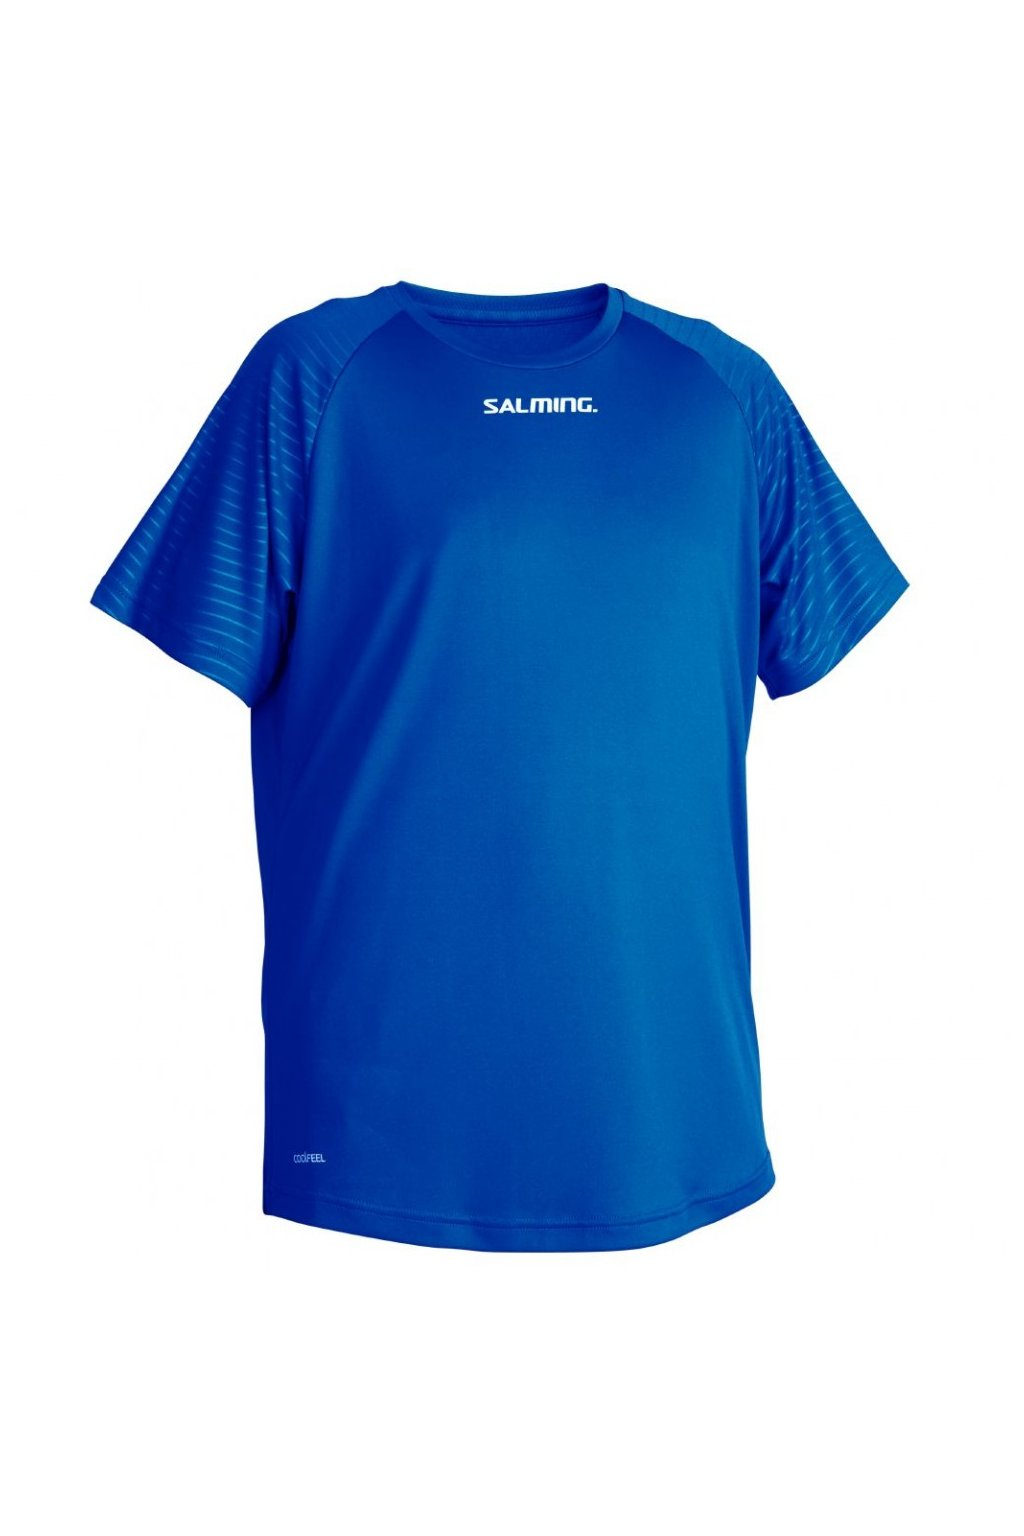 salming granite game tee men (7)